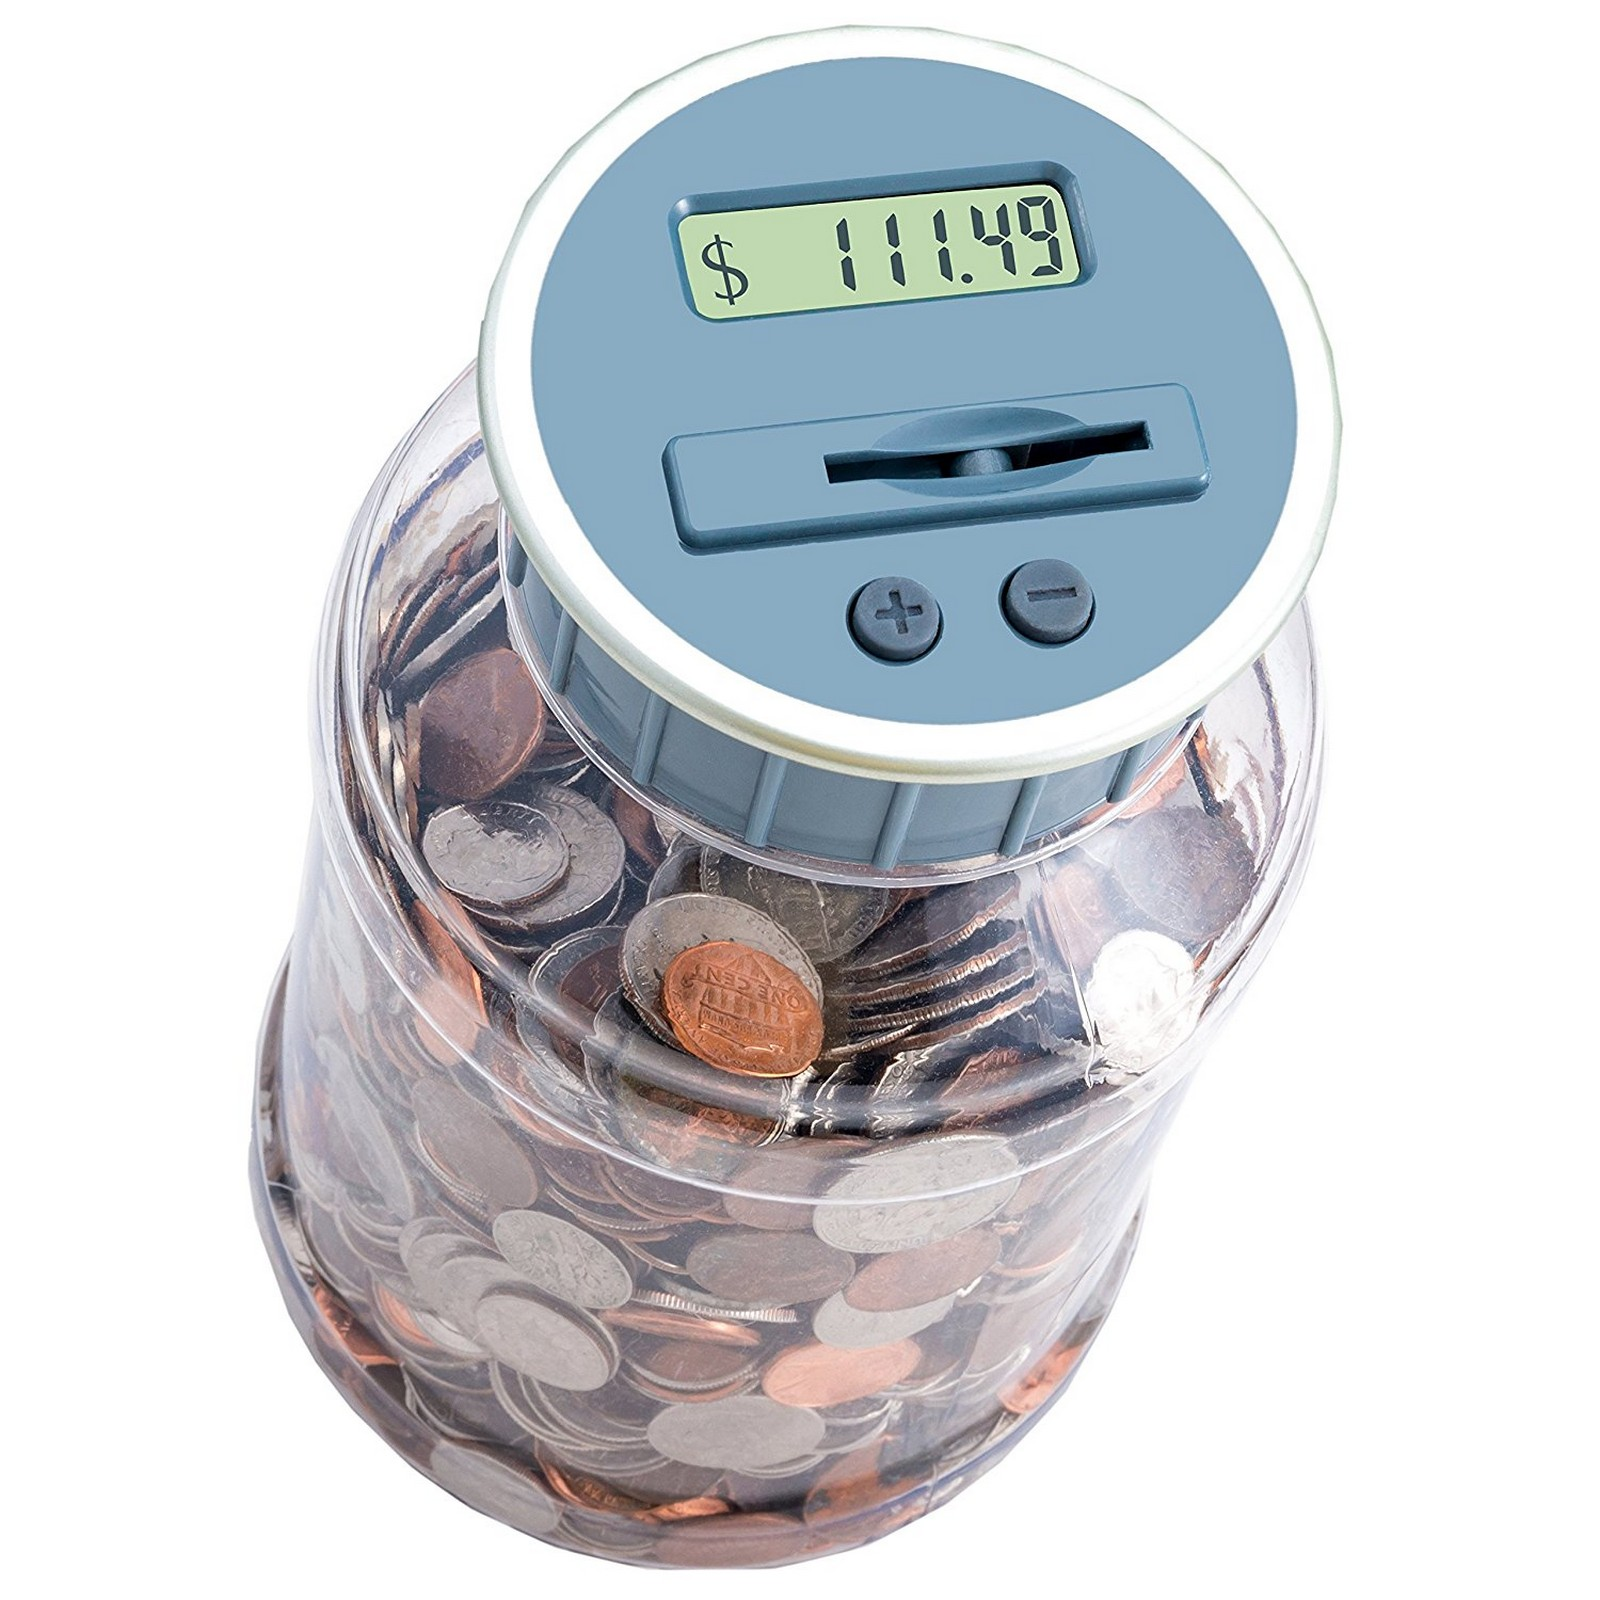 15 New Inventions - Digital counting coin bank.